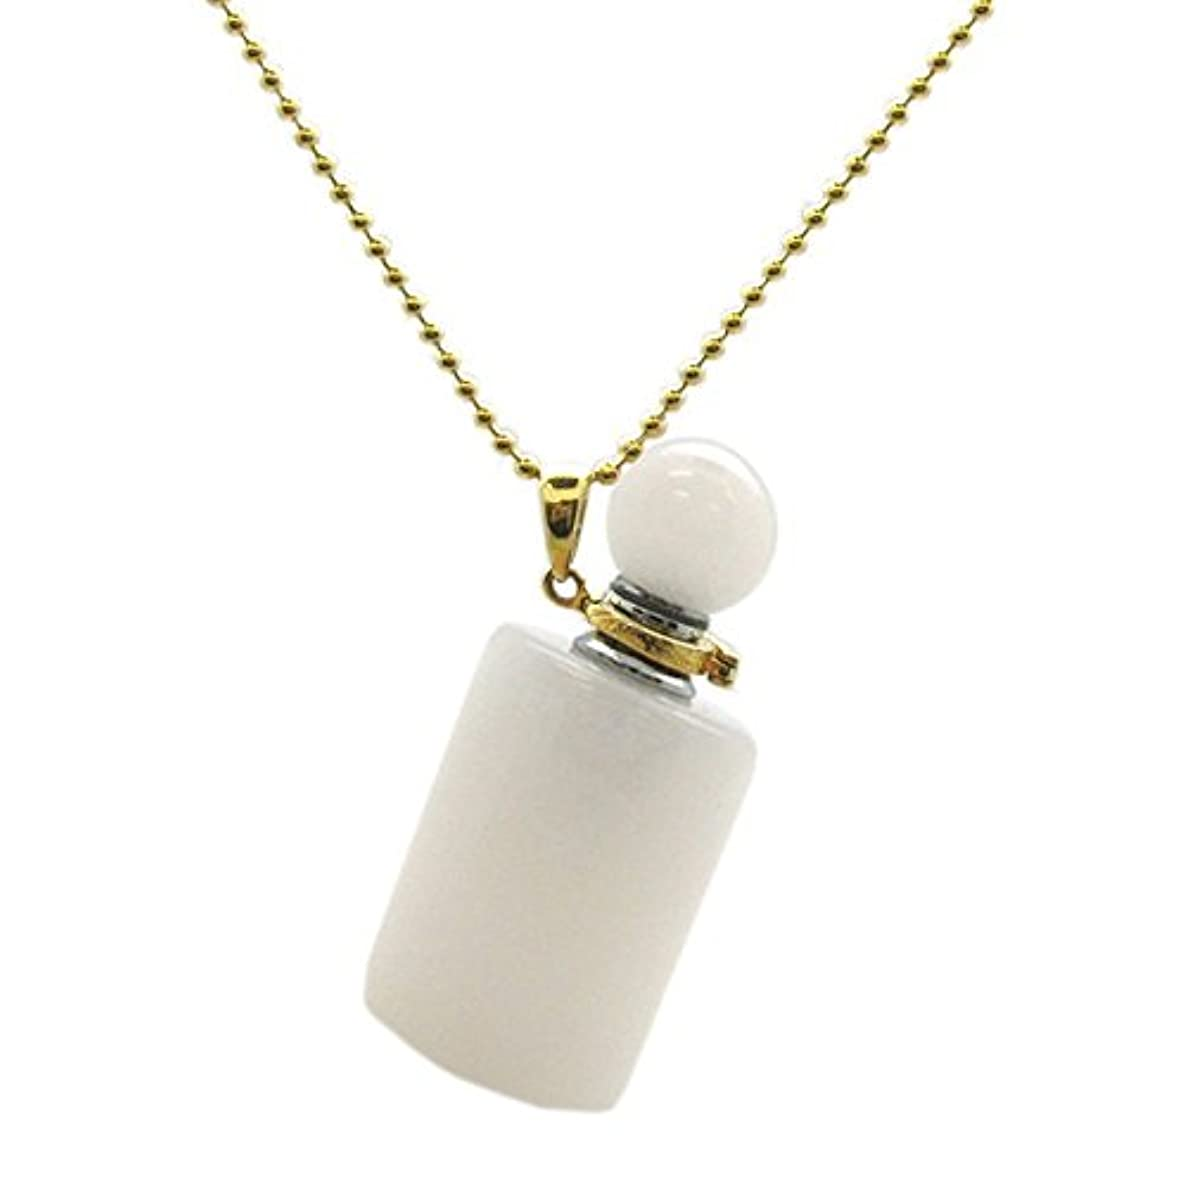 経済条件付き石のケイトAvenue Gold over Sterling Silver Gemstone Aromatherapy Essential Oil Diffuserネックレス、香水とMosquito Repellentネックレス